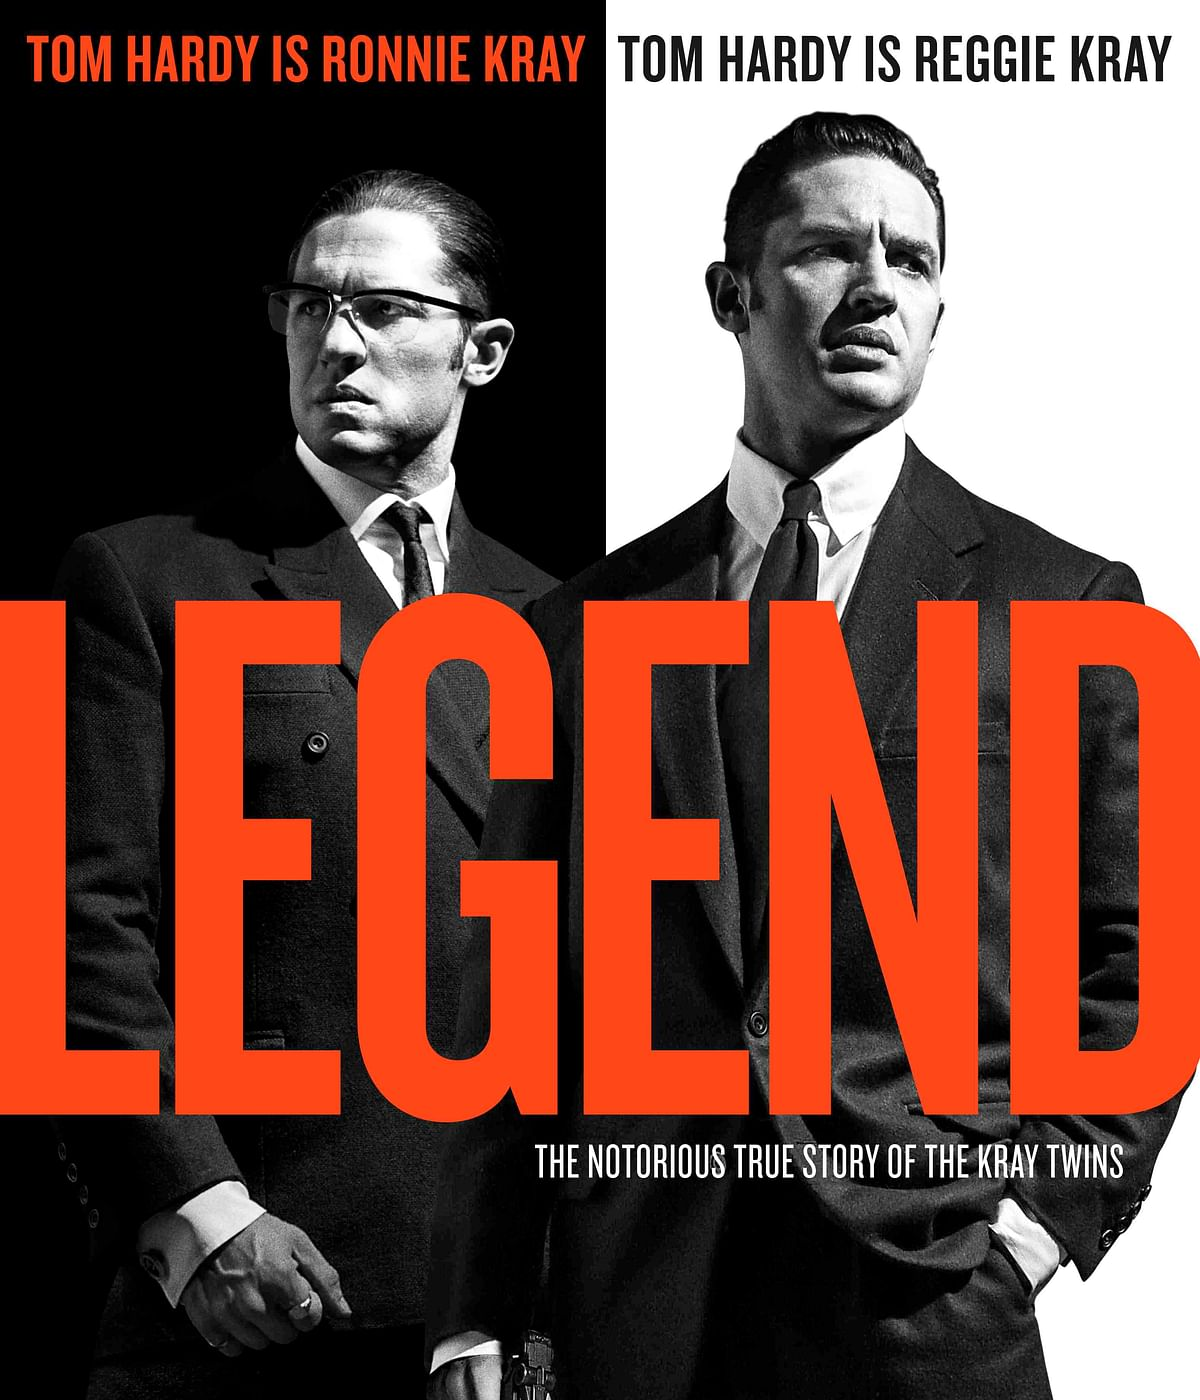 Tom Hardy as Ronnie and Reggie Kray in <i>Legend</i>